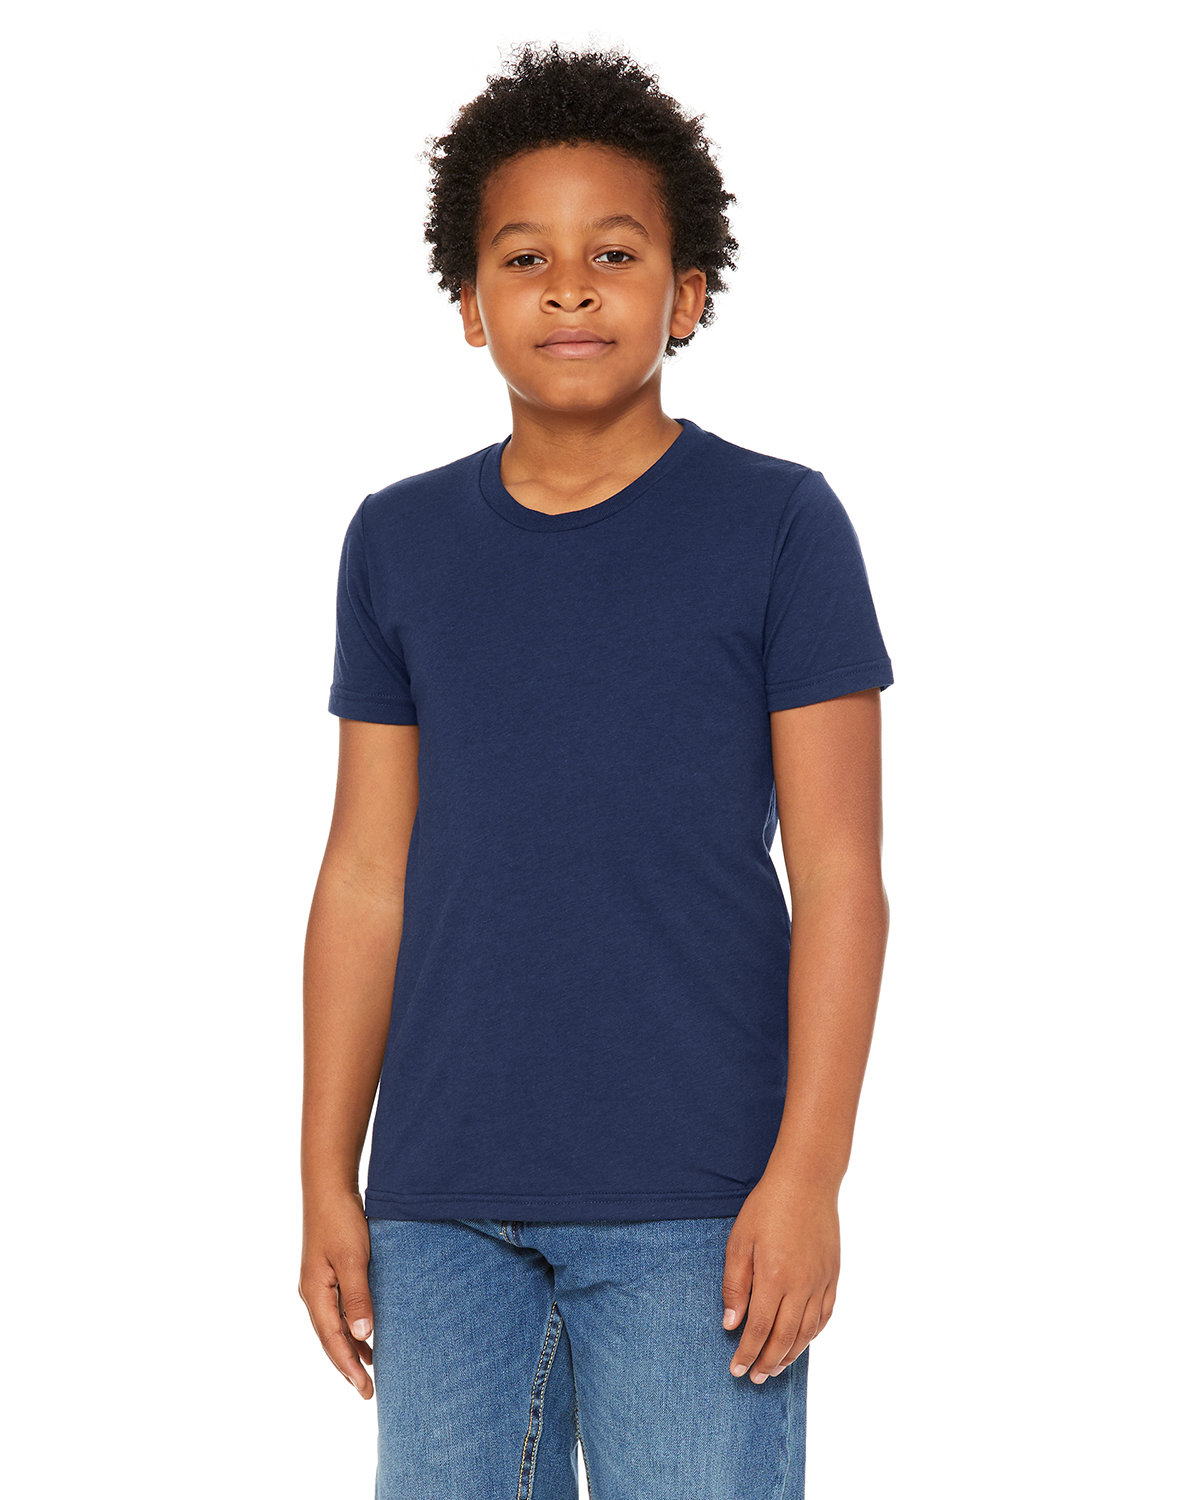 Bella + Canvas Youth Triblend Short-Sleeve T-Shirt SOLID NVY TRBLND